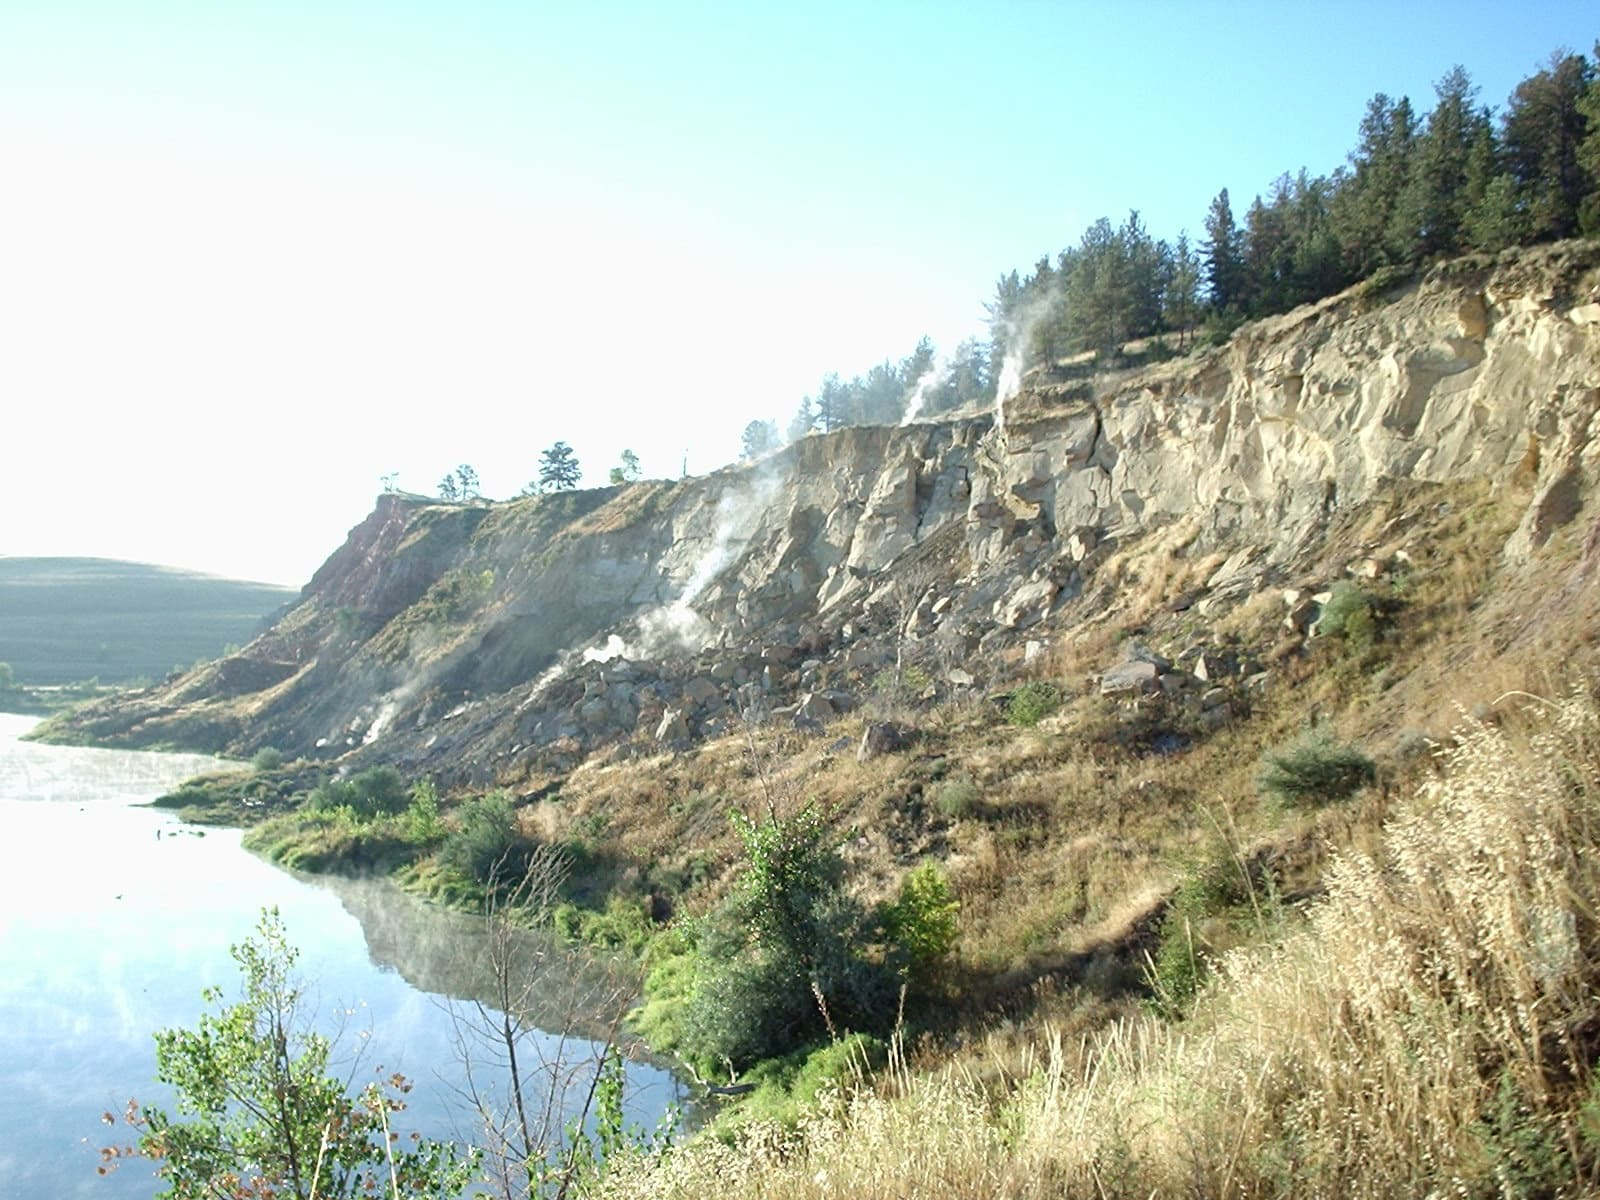 There's $428M in unfunded abandoned mine reclamation work in